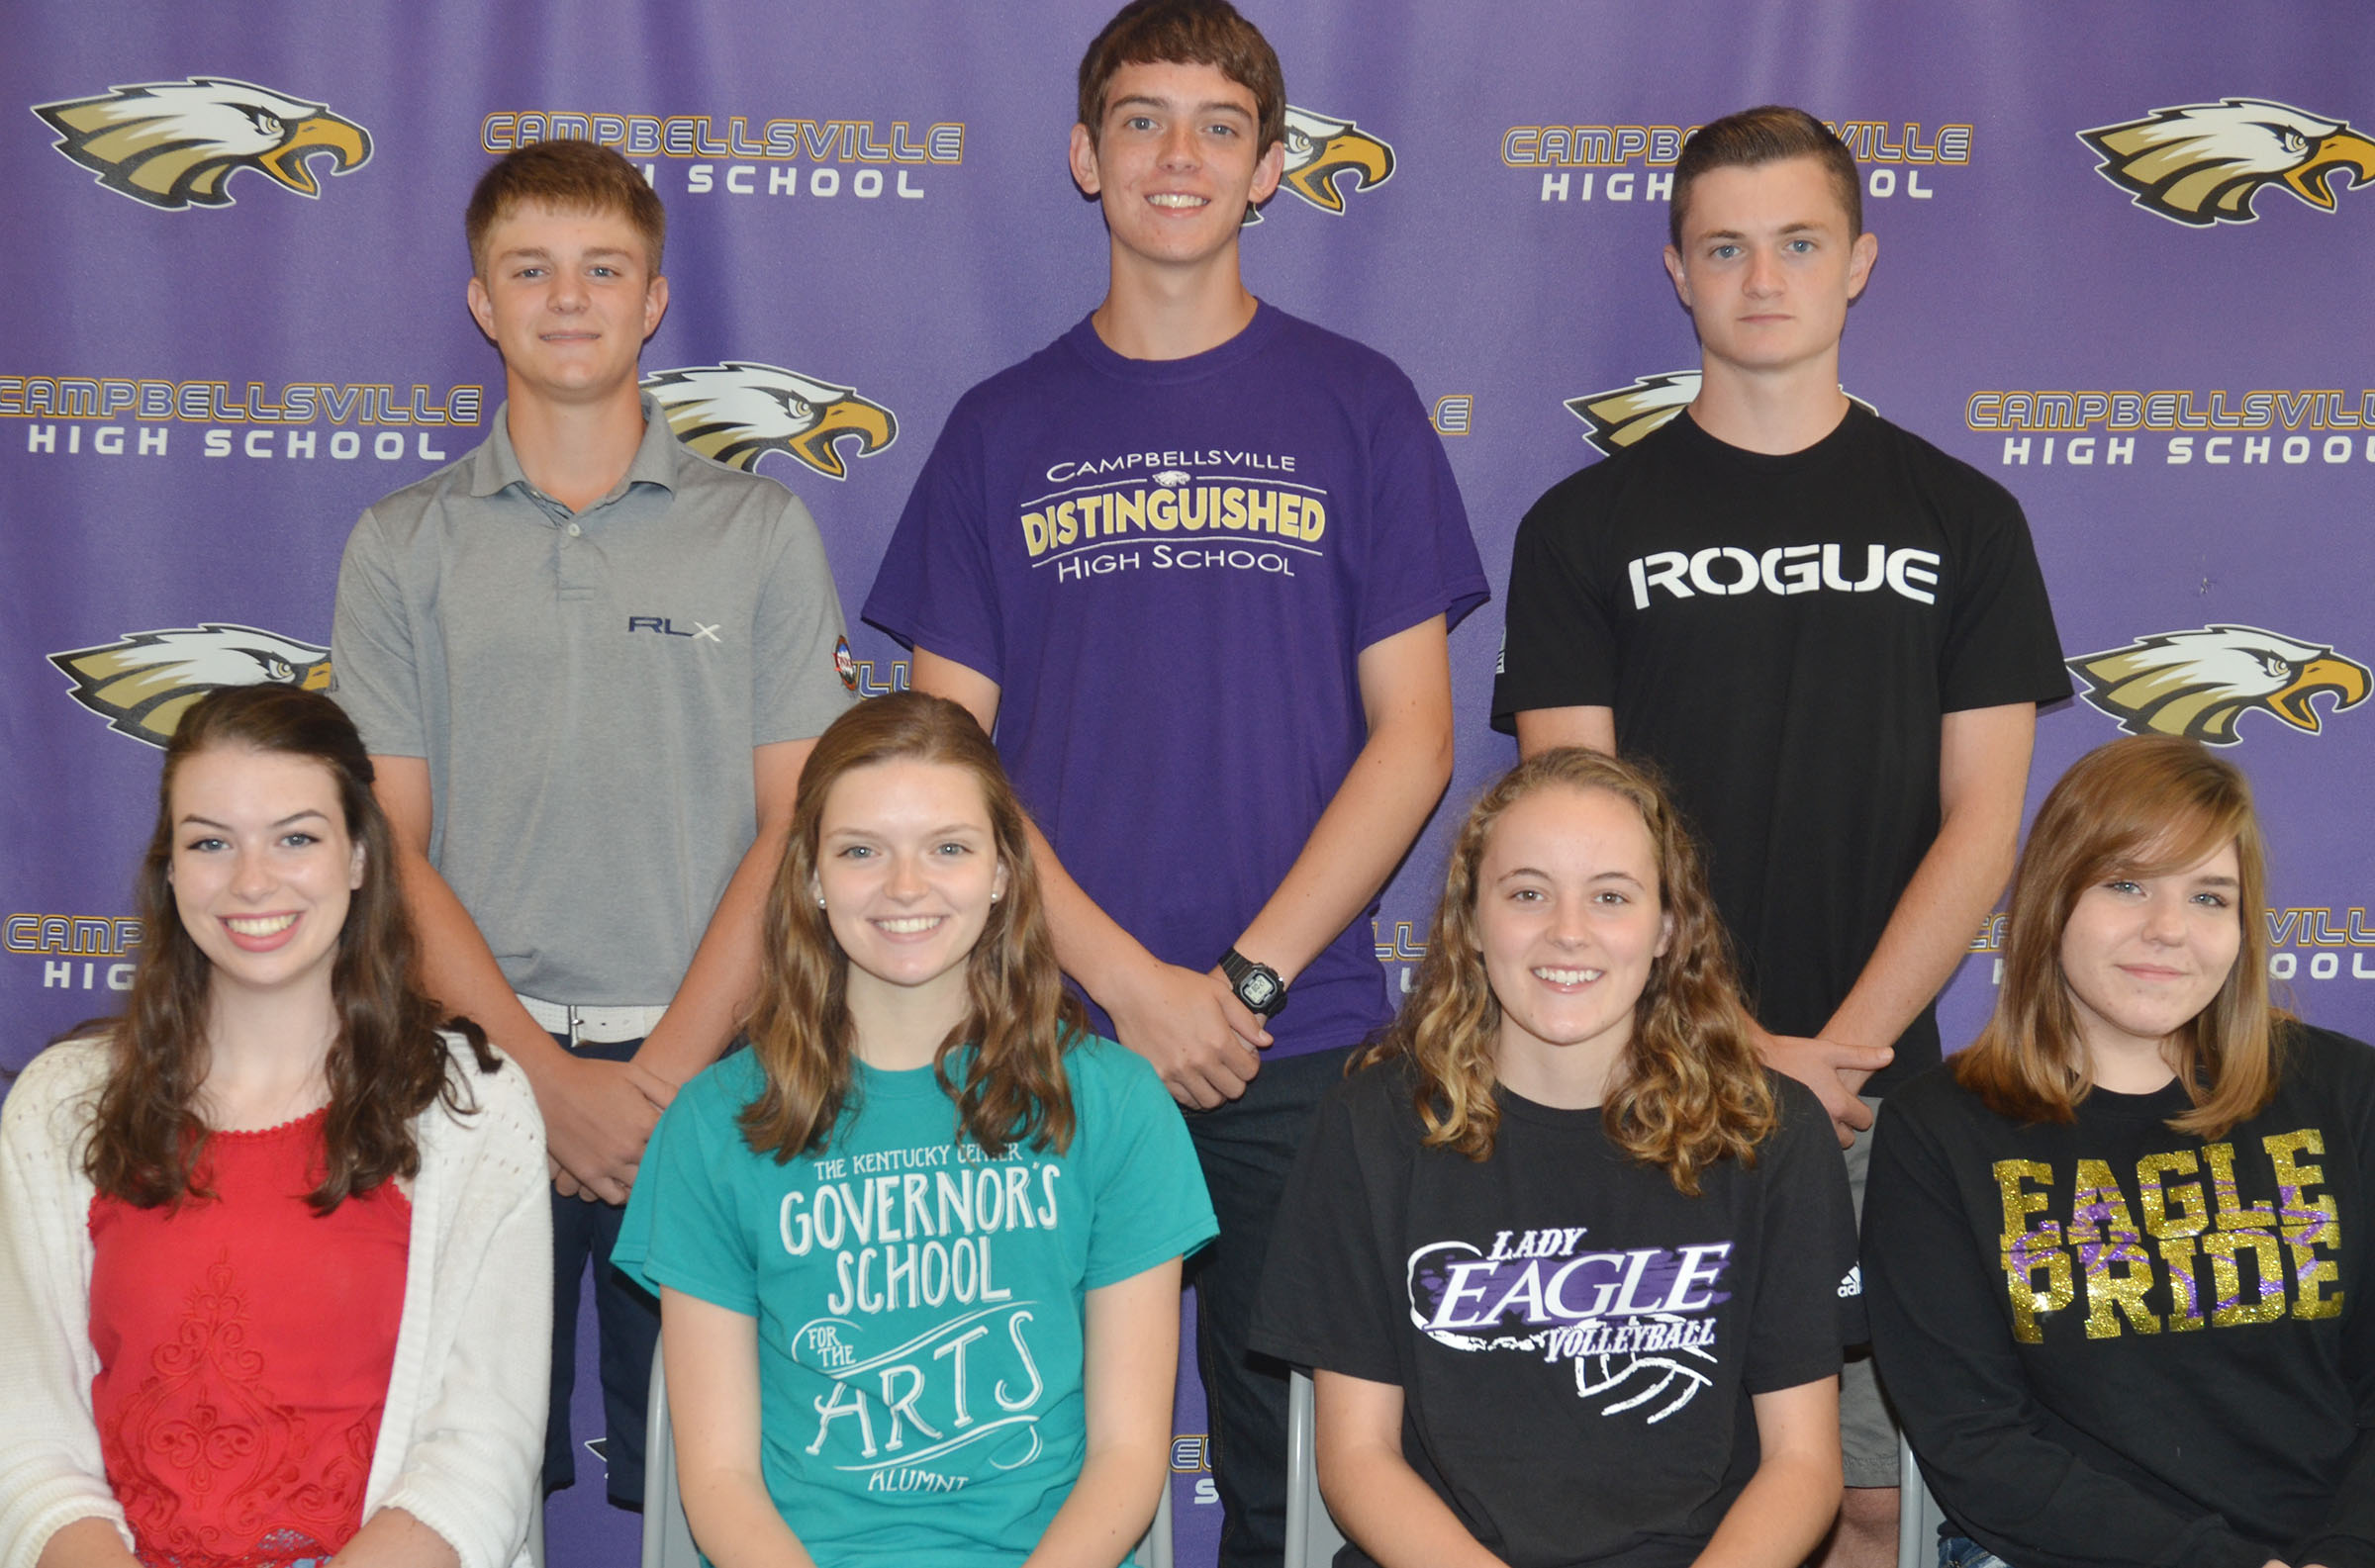 About 60 students took AP tests at the end of the 2015-2016 school year. Several students were recently honored for receiving top scores on the exams. They are, from left, front, seniors Laura Lamb, Blair Lamb and Caroline McMahan and junior Sara Farmer. Back, junior Alex Doss, senior Murphy Lamb and junior Bryce Richardson. Samuel Kessler also received high marks on the AP exams. He is attending Gatton Academy to complete his high school studies.